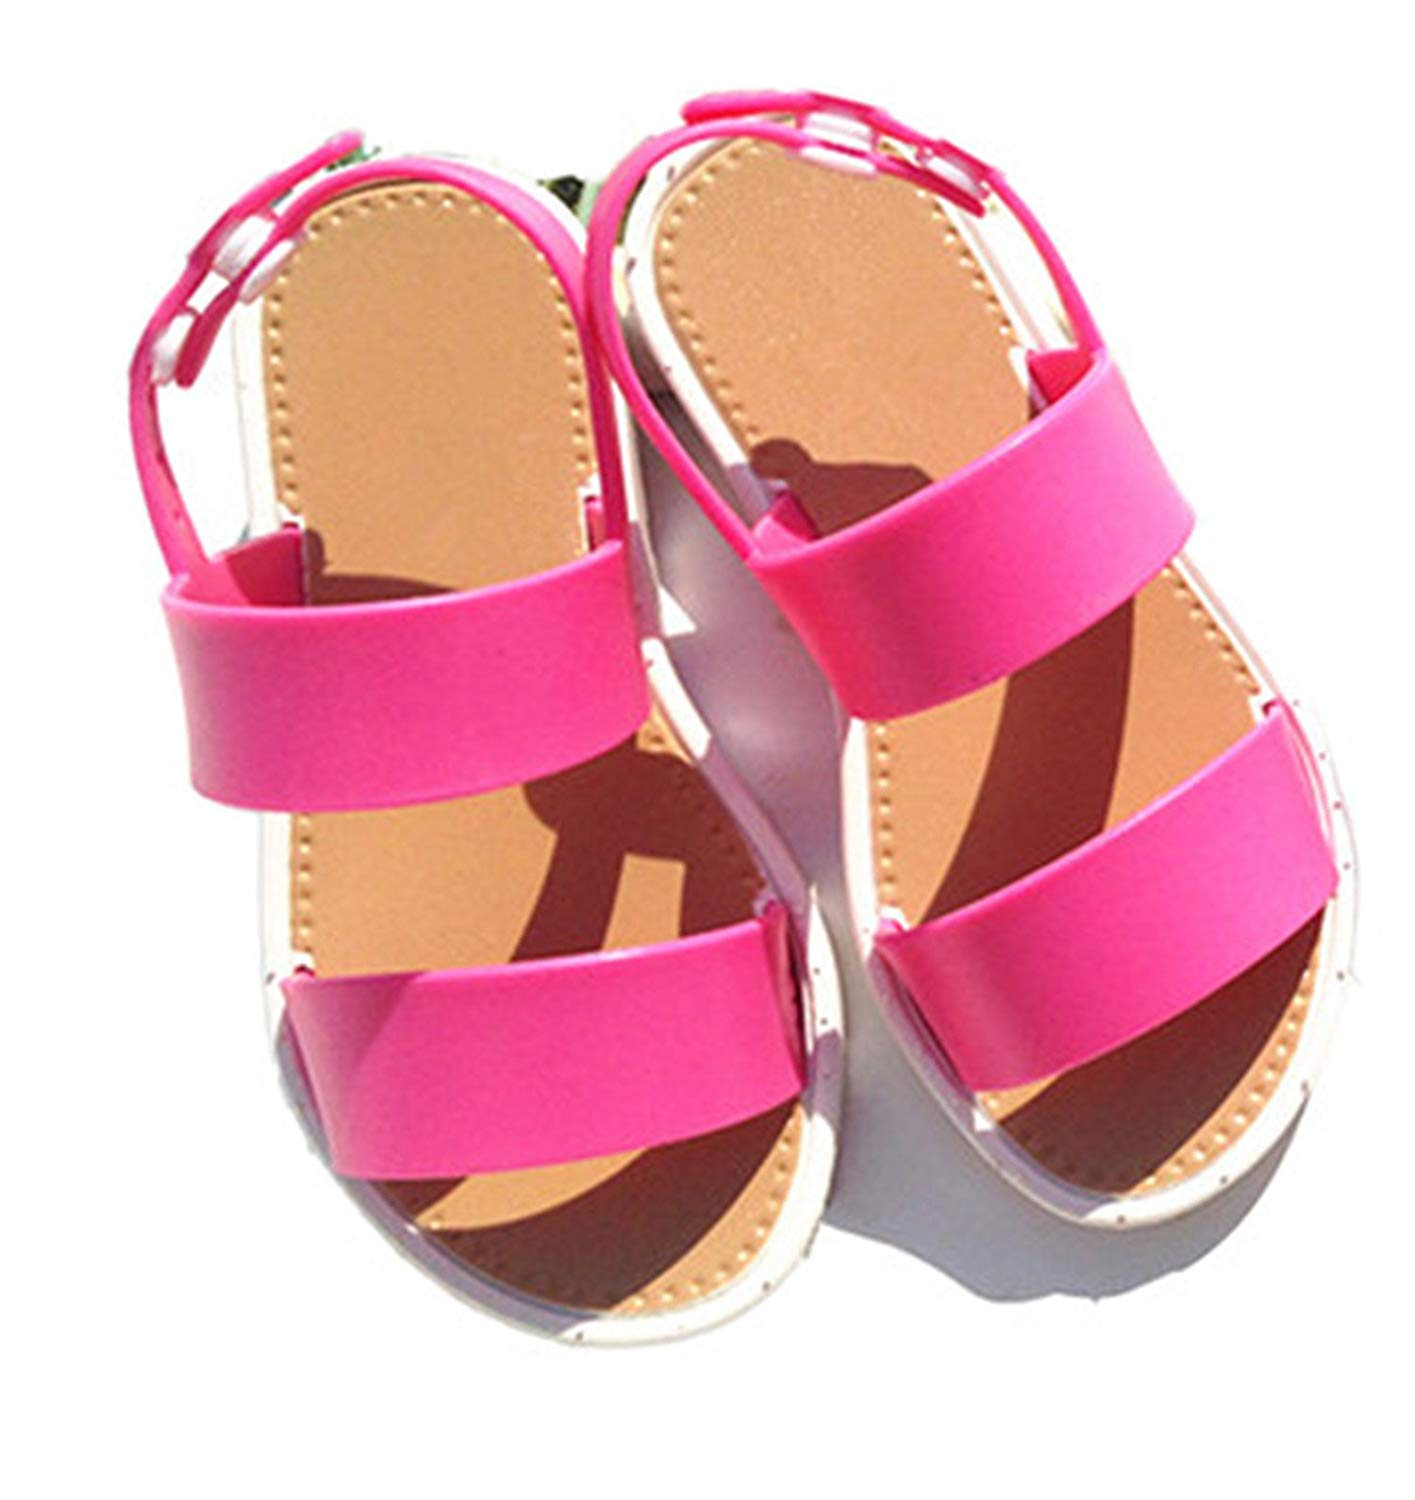 236afd08ed98 Get Quotations · Melissa Wilde Fashion Sandals Shoes for Kids Girls Jelly  Party Princess Casual Beach Shoes Girls Sandals